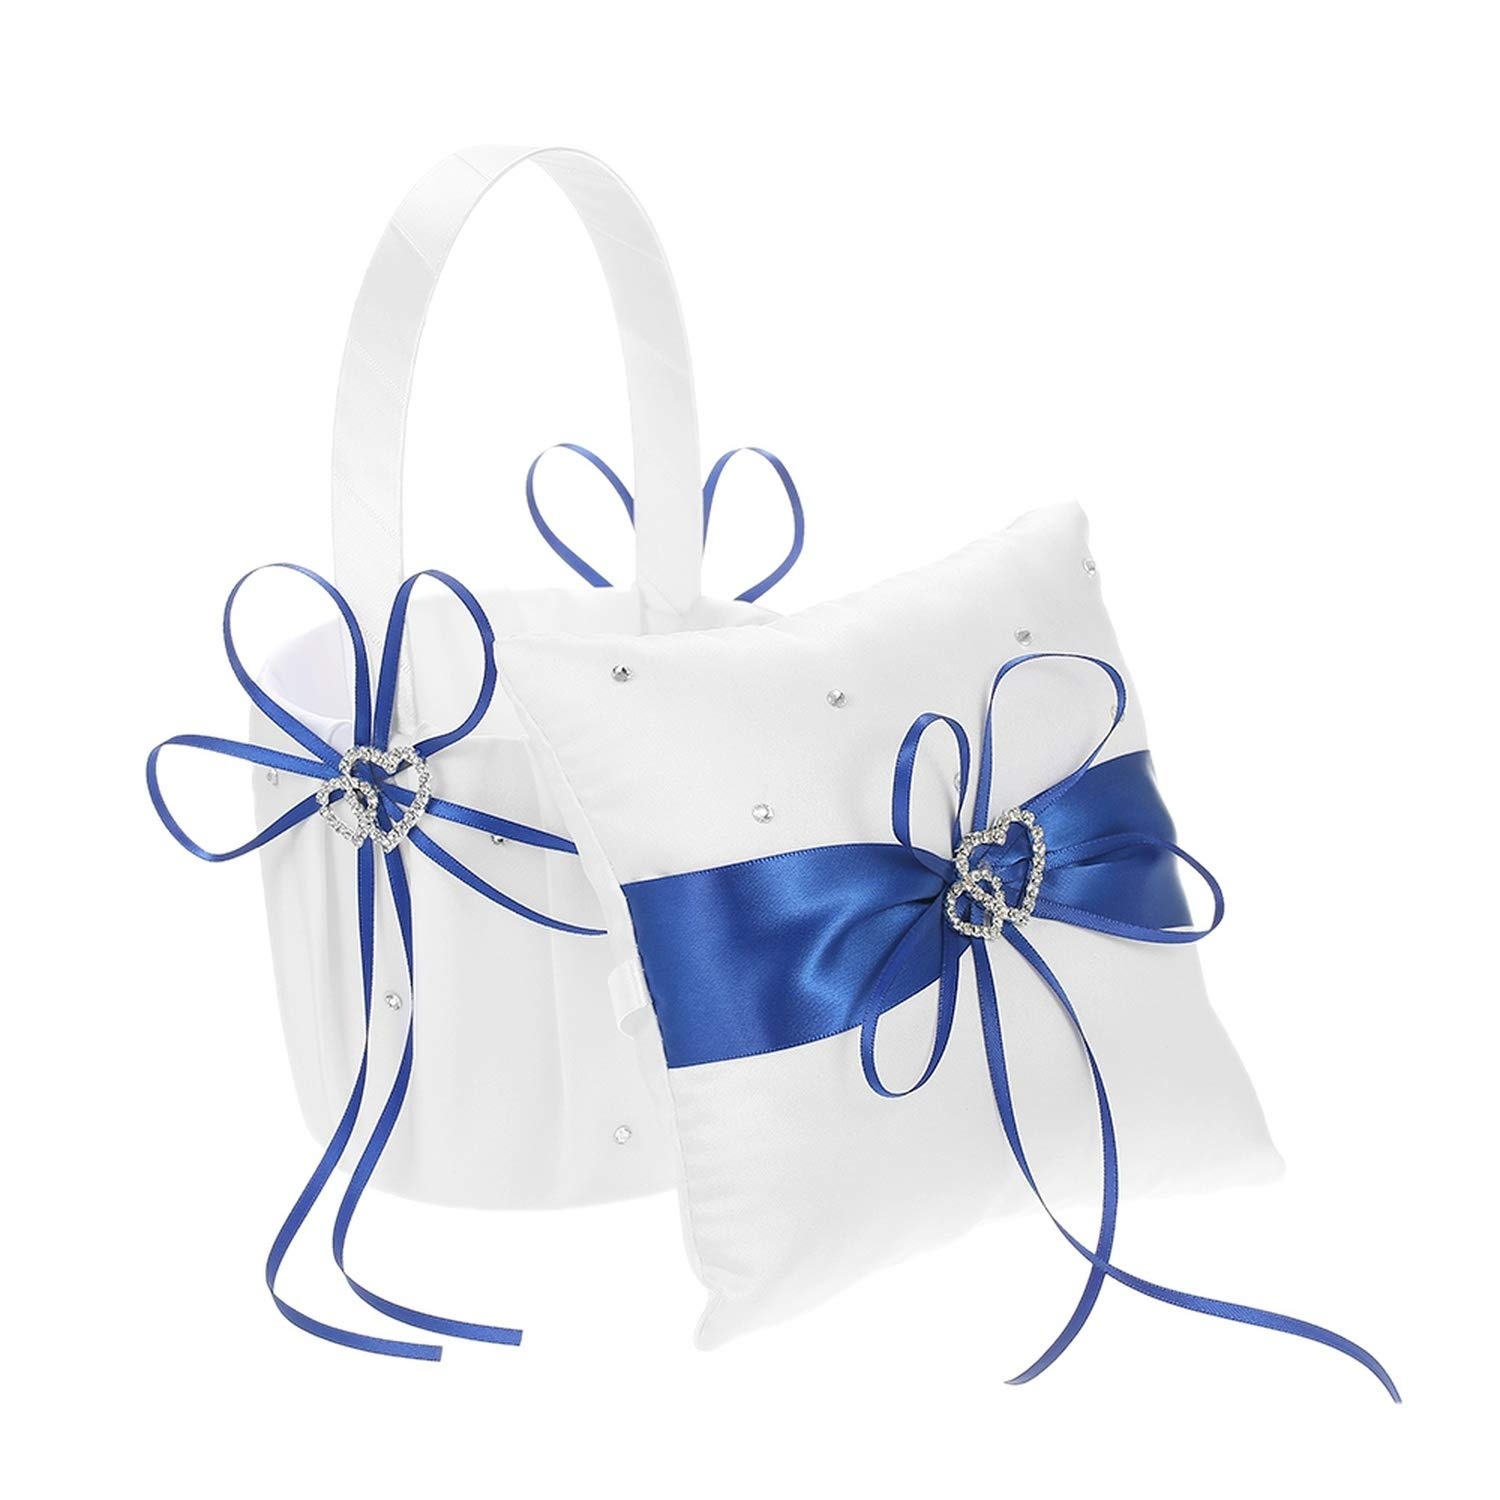 6 6 inches Double Heart Satin Ring Bearer Pillow and Wedding Flower Girl Basket Set with Rhinestone Ribbon Decoration White,Blue by Suangu-flower baskets